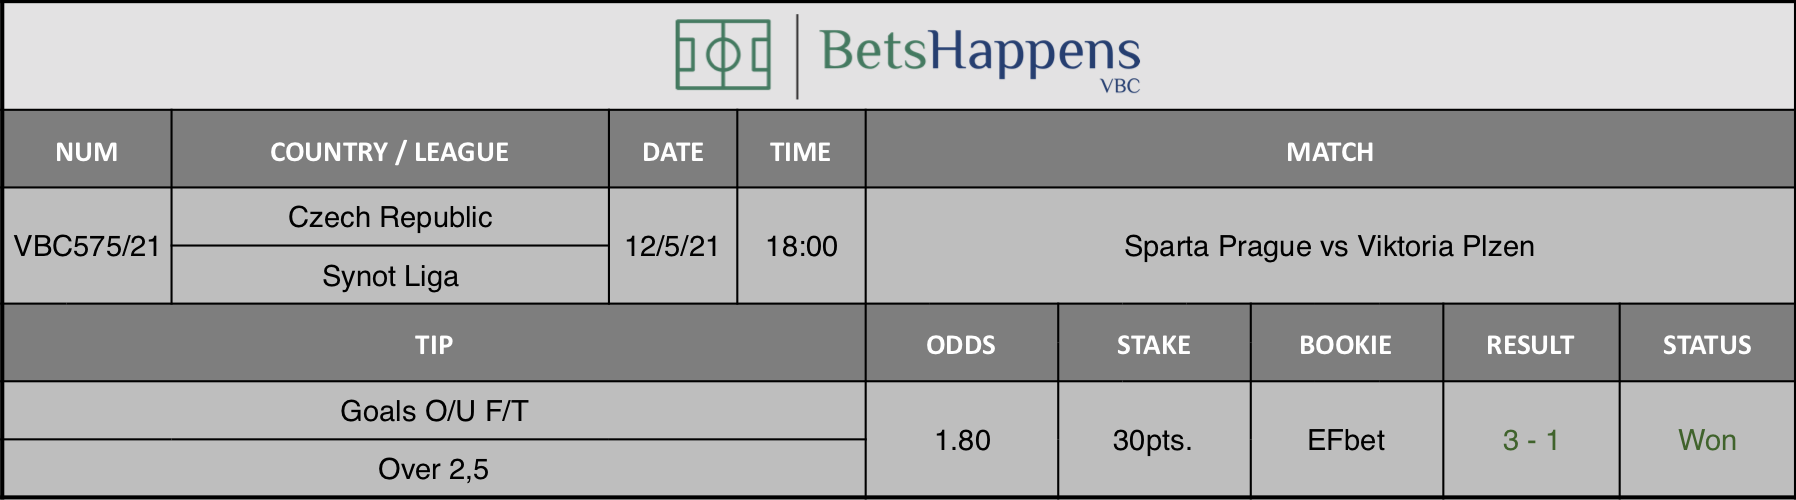 Results of our tip for the Sparta Prague vs Viktoria Plzen match where Goals O/U F/T Over 2,5 is recommended.